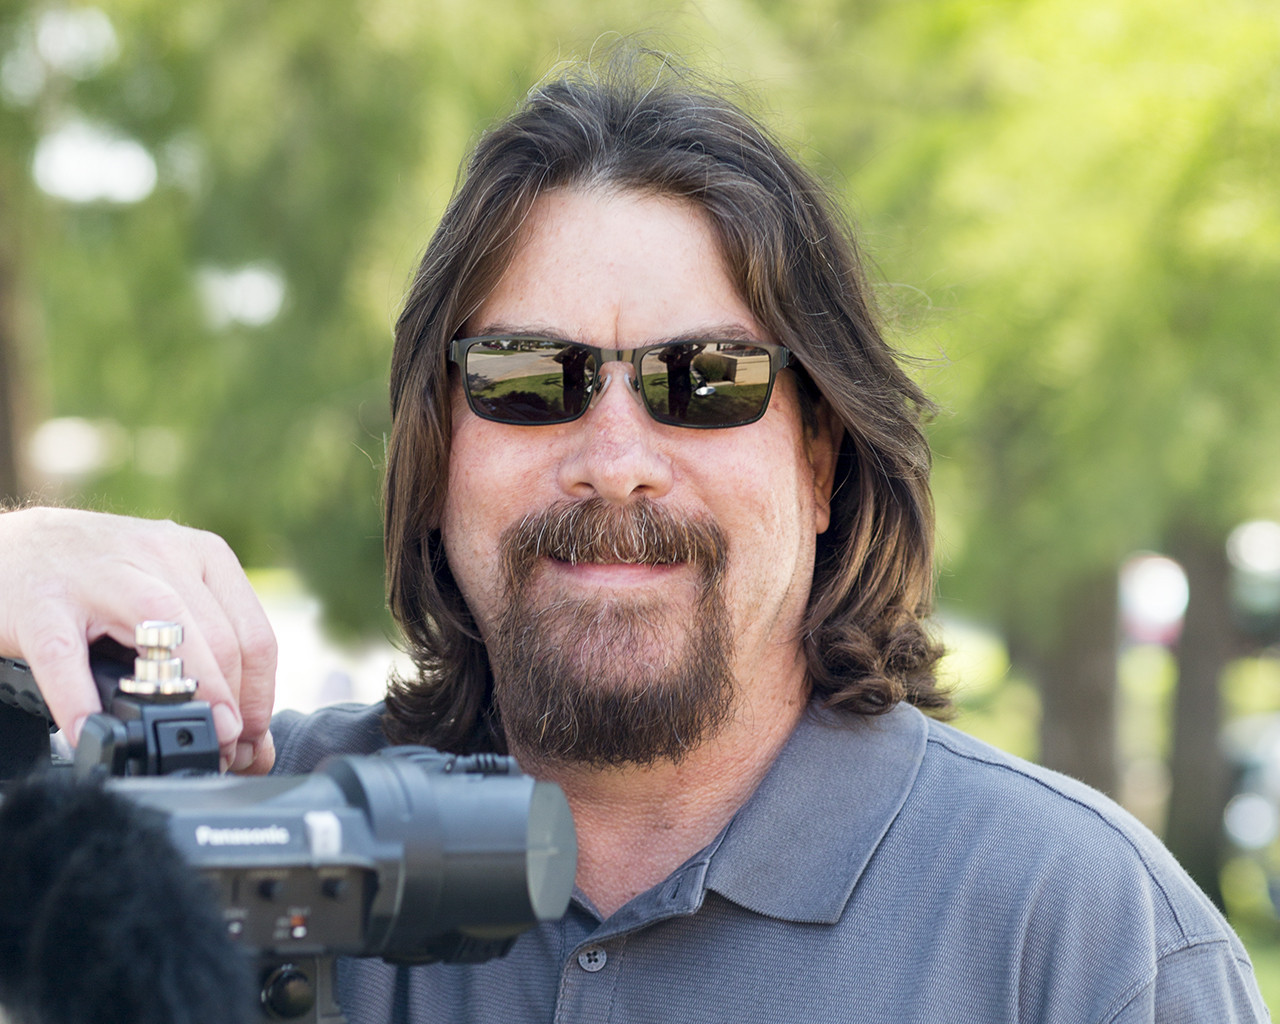 Brian Boone, Videographer and Editor